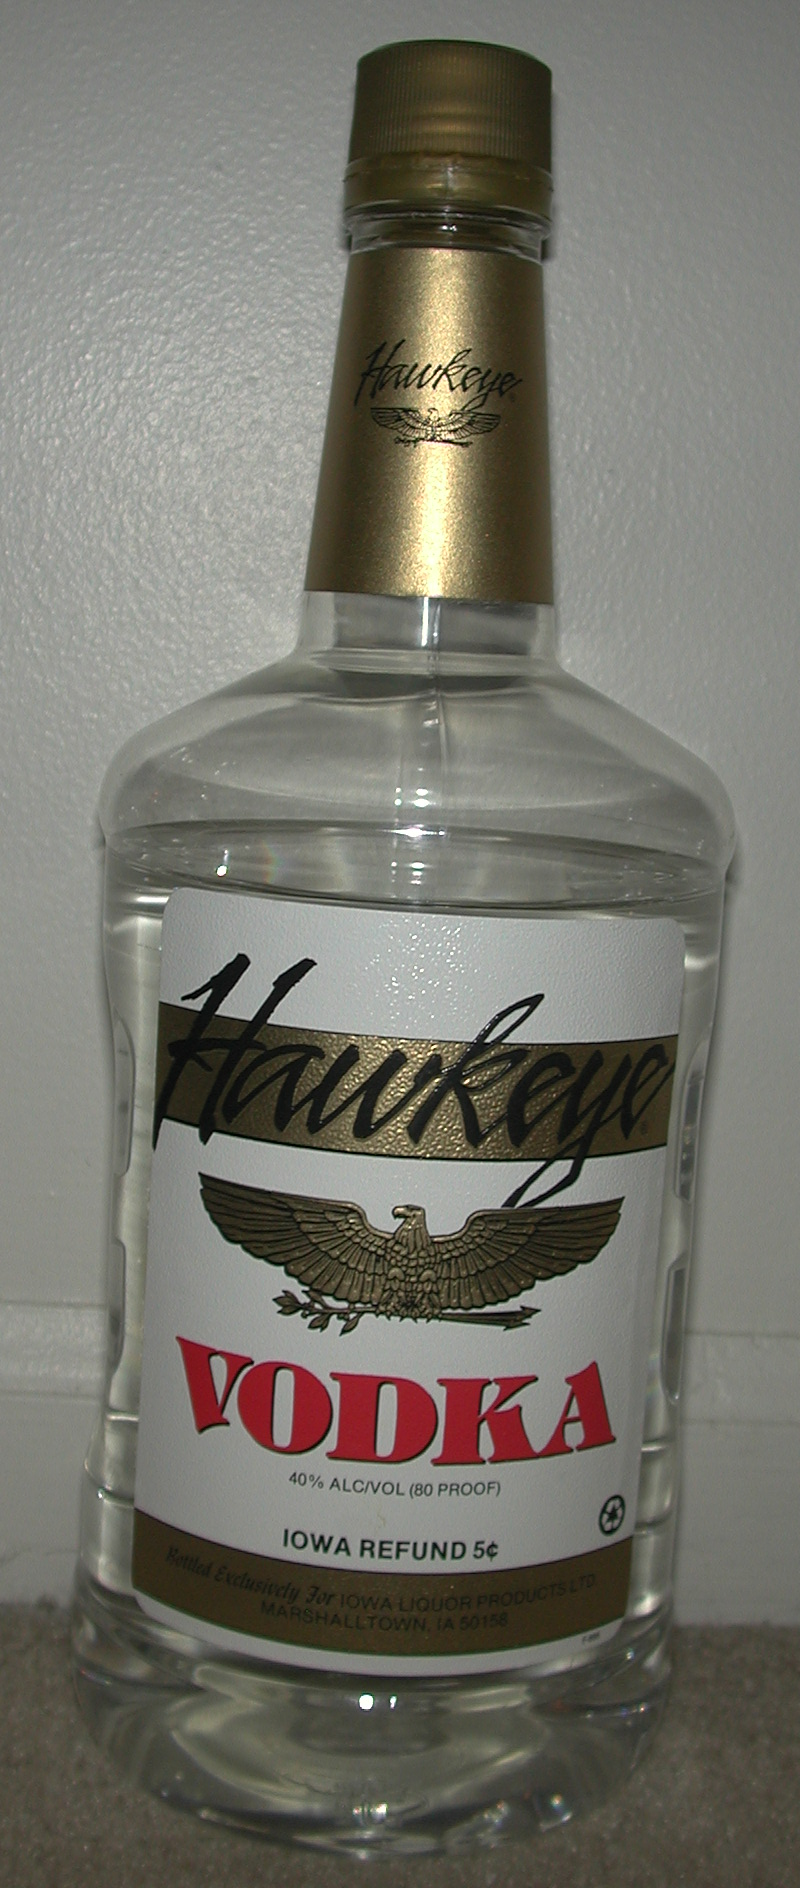 Hawkeye spirits wikipedia - What to do with cheap vodka ...